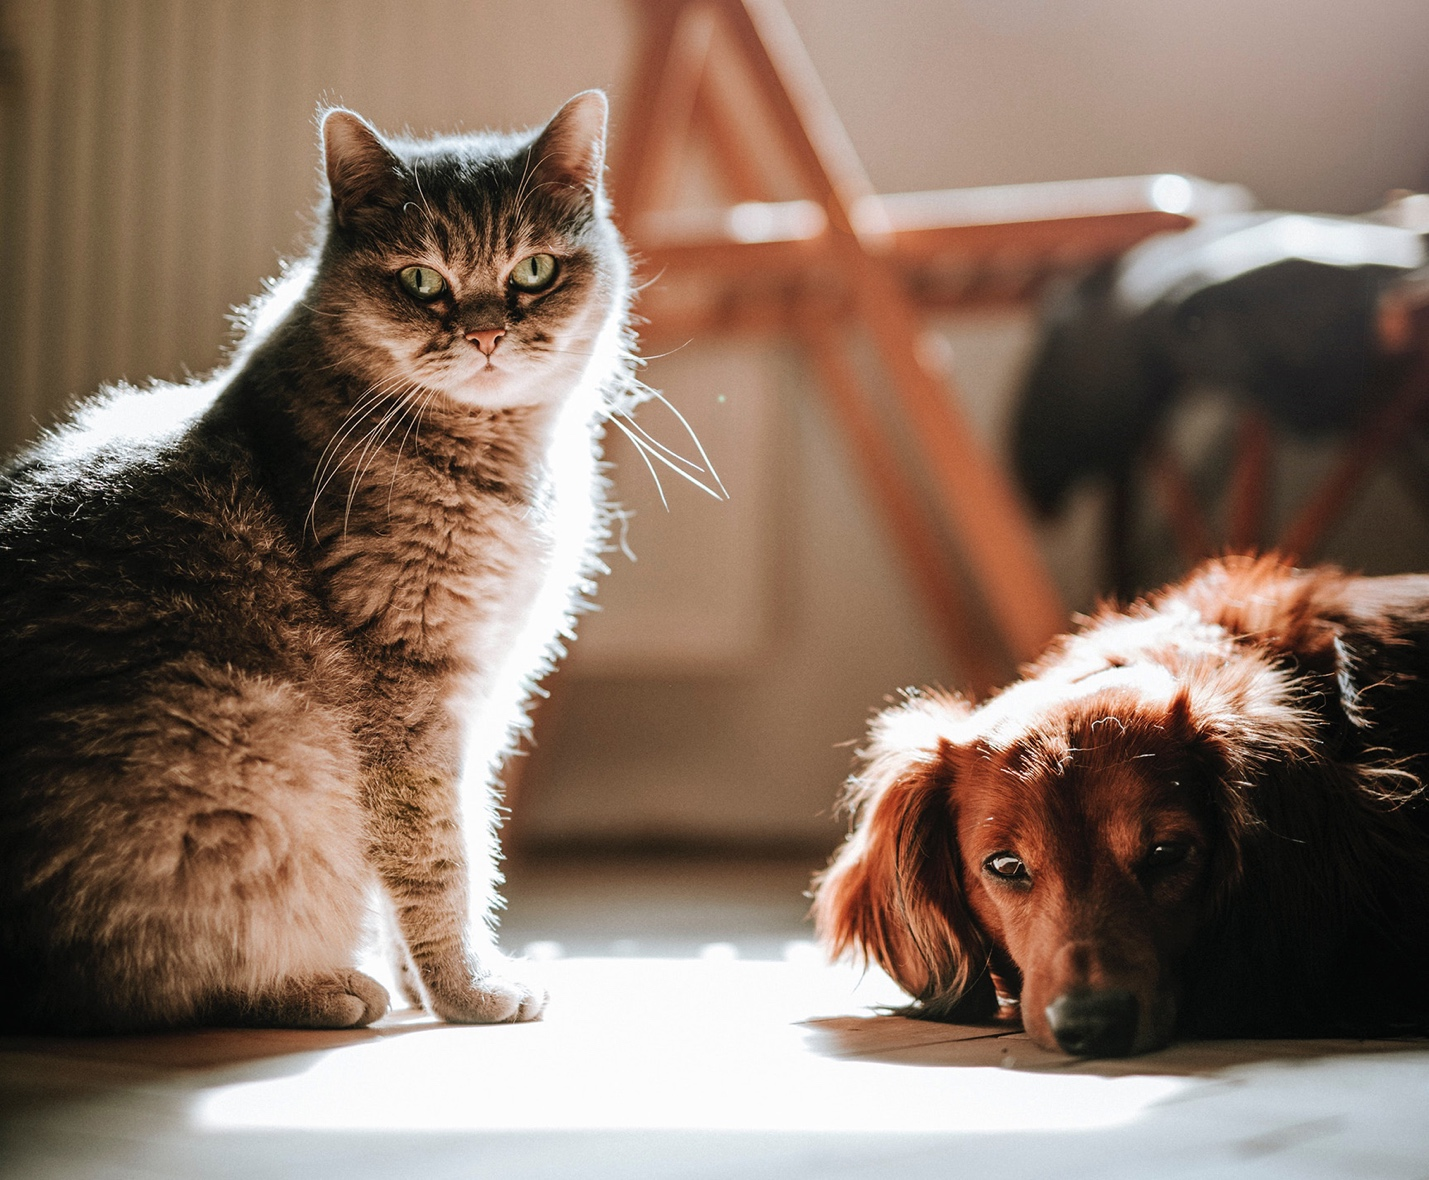 A cat and a dog  Description automatically generated with medium confidence